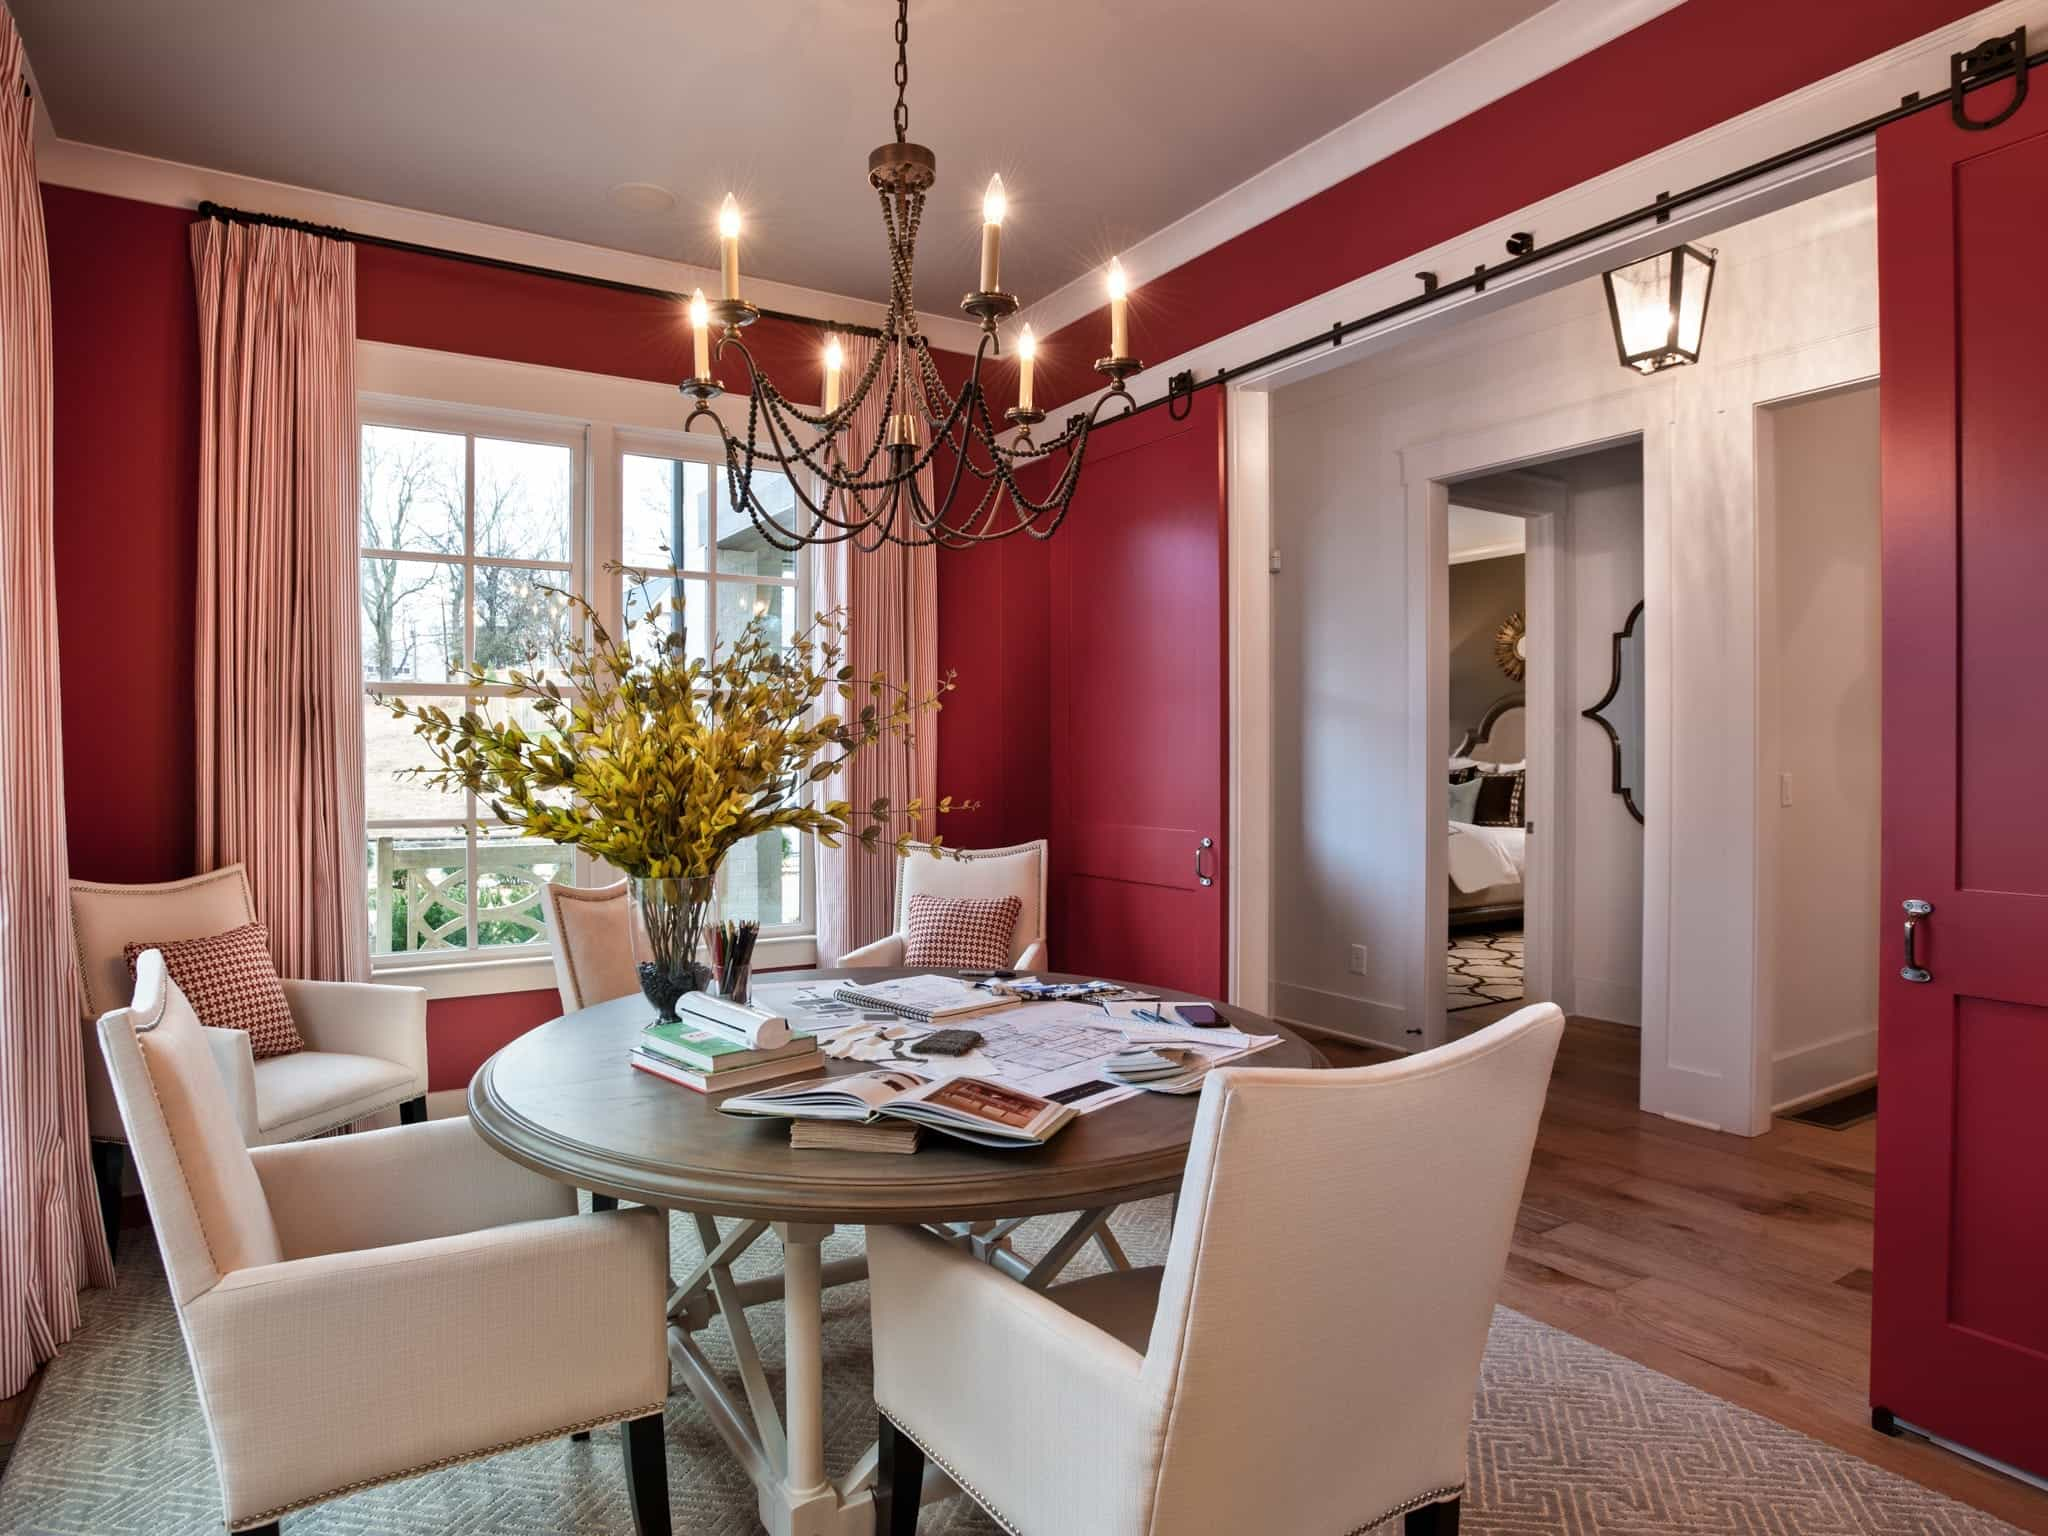 Red Transitional Romantic Dining Room With Sliding Doors (View 9 of 21)